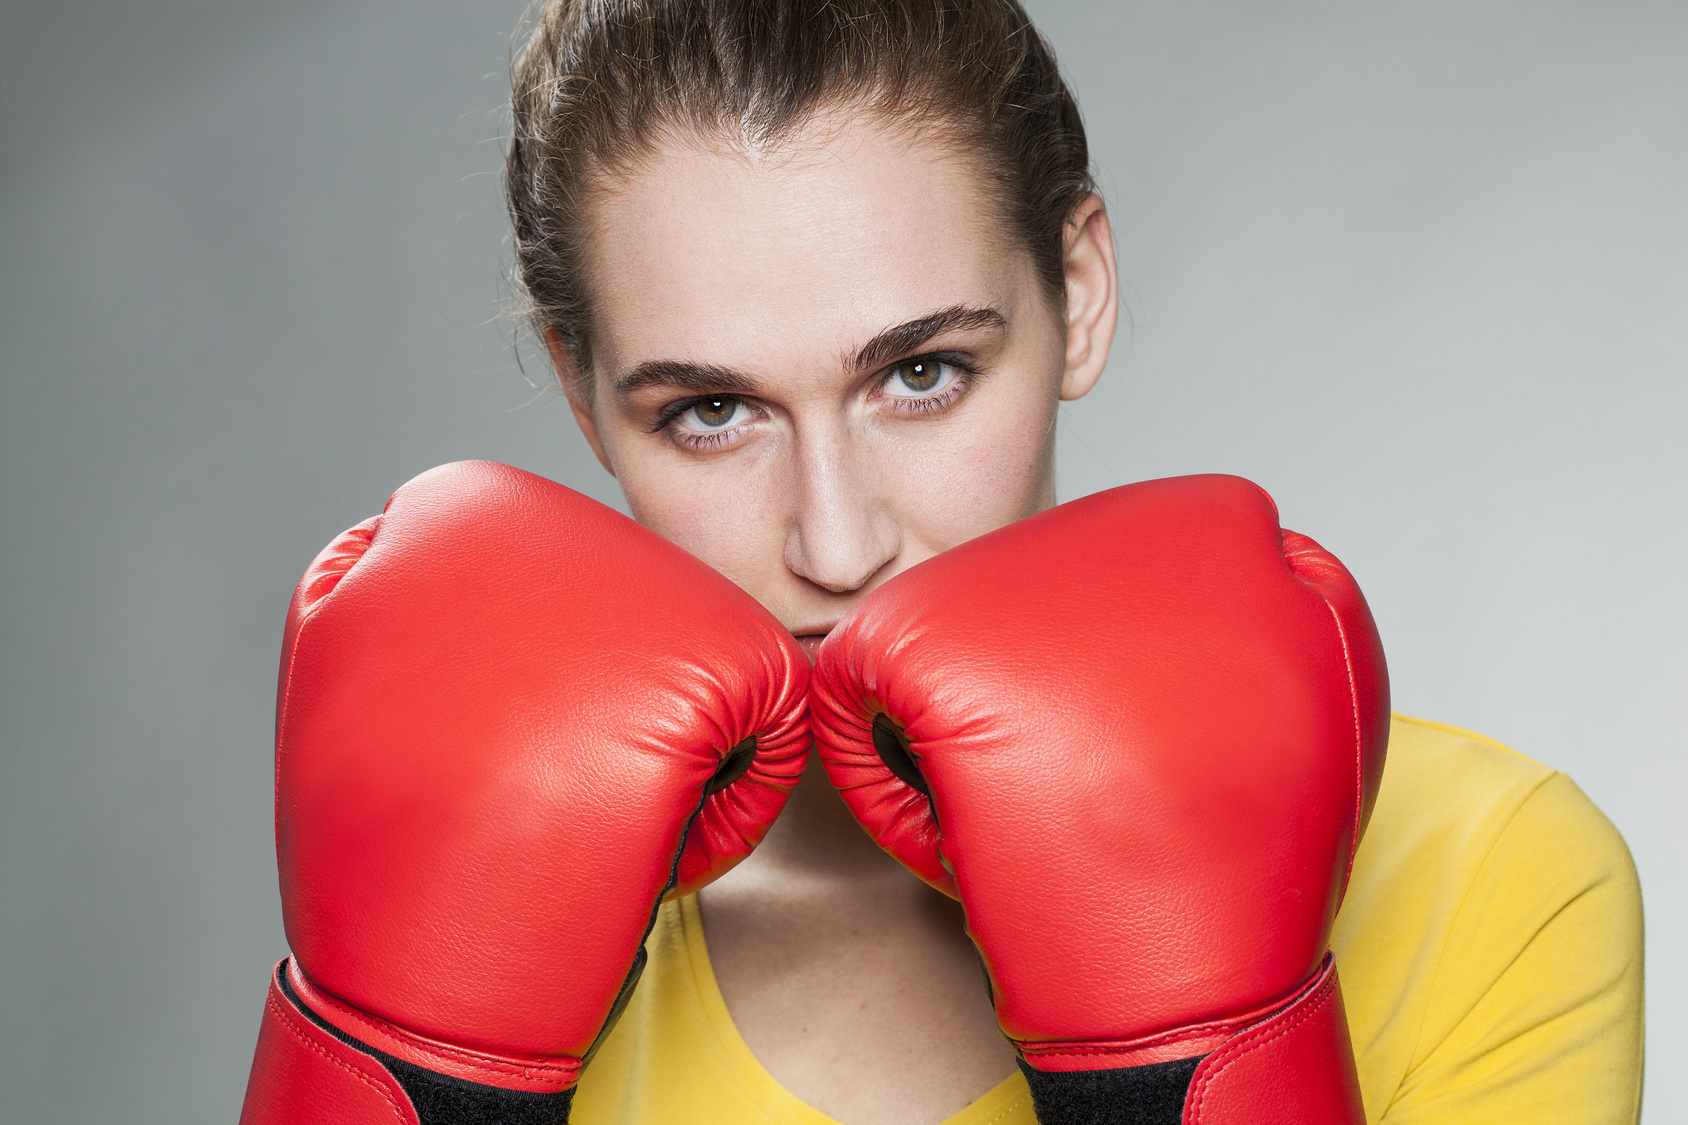 proud young woman protecting herself with boxing gloves for female protection concept